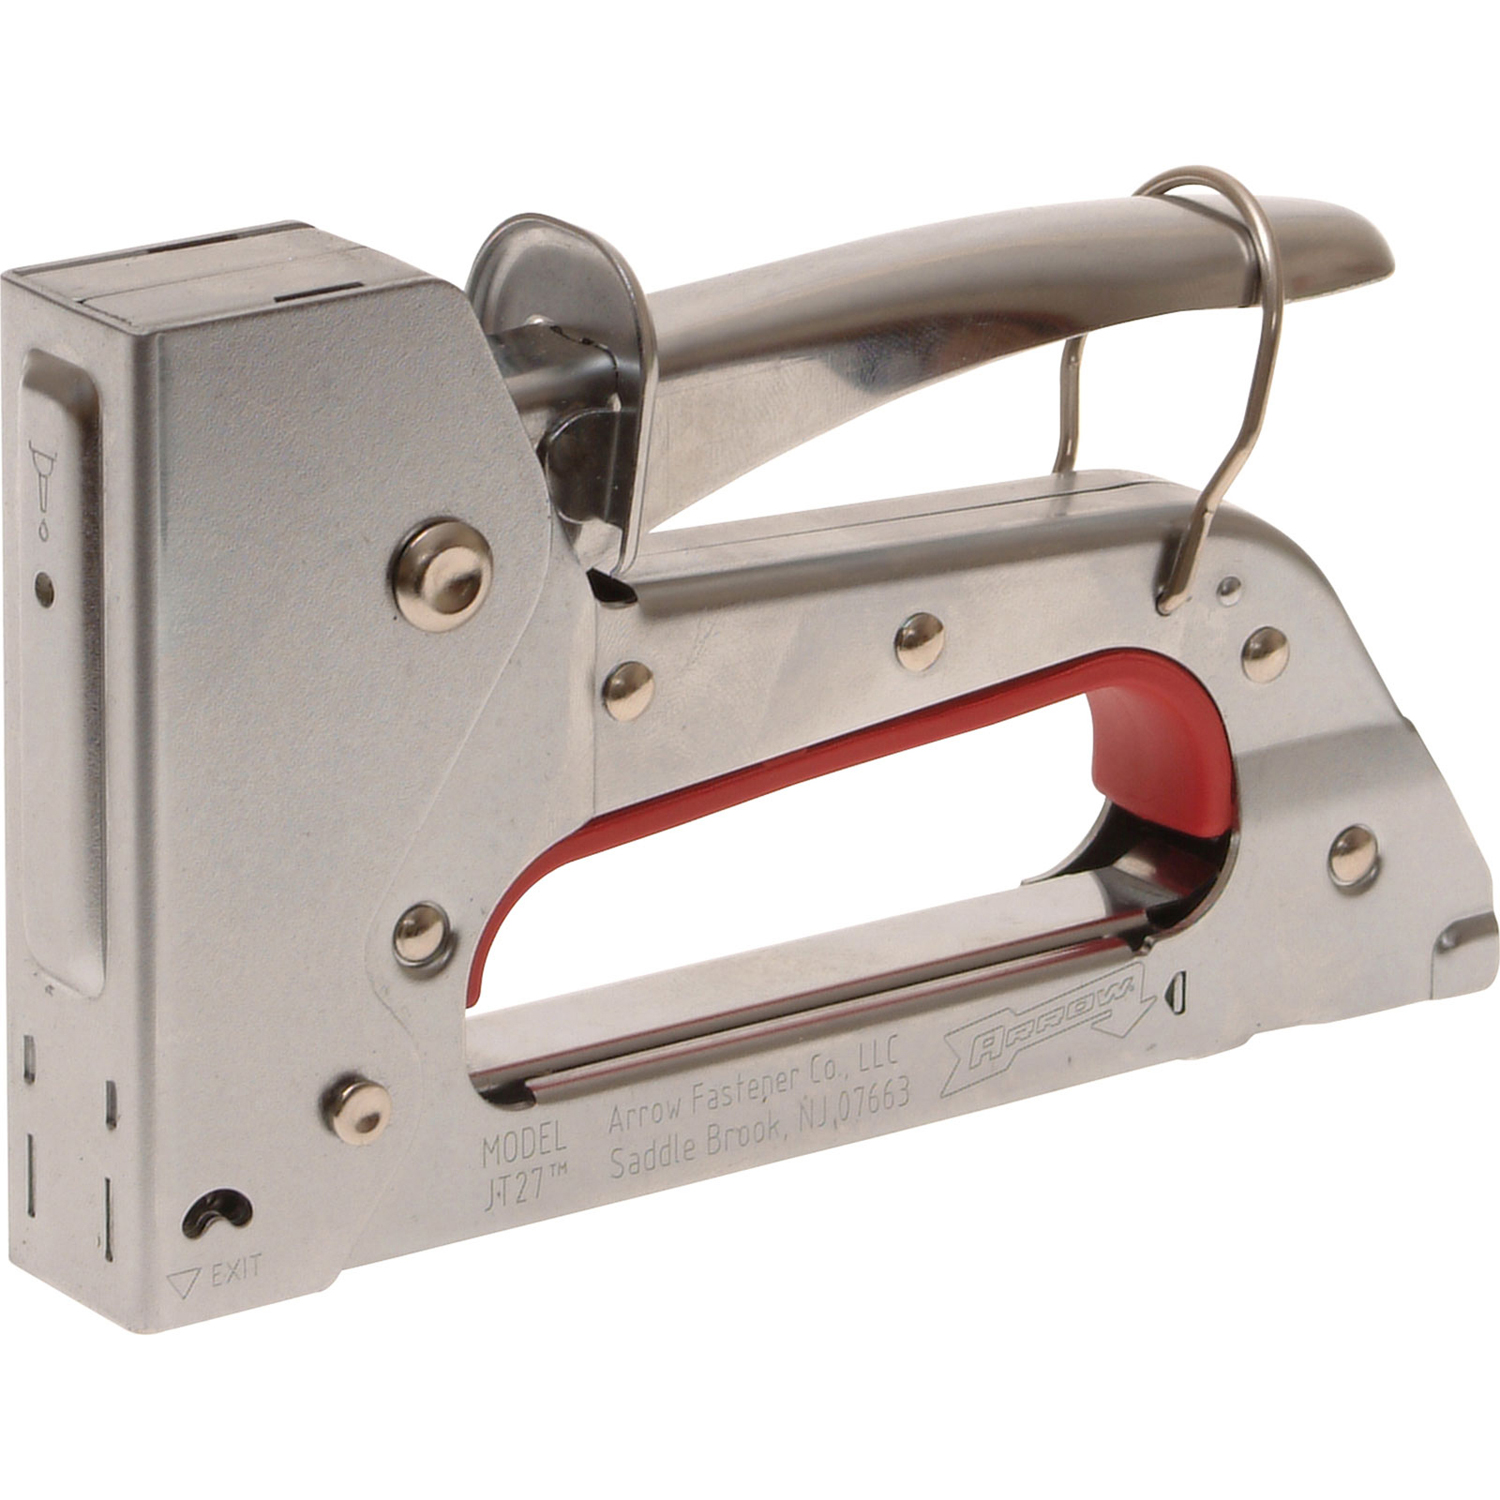 Image of Arrow Jt27 Household Tacker